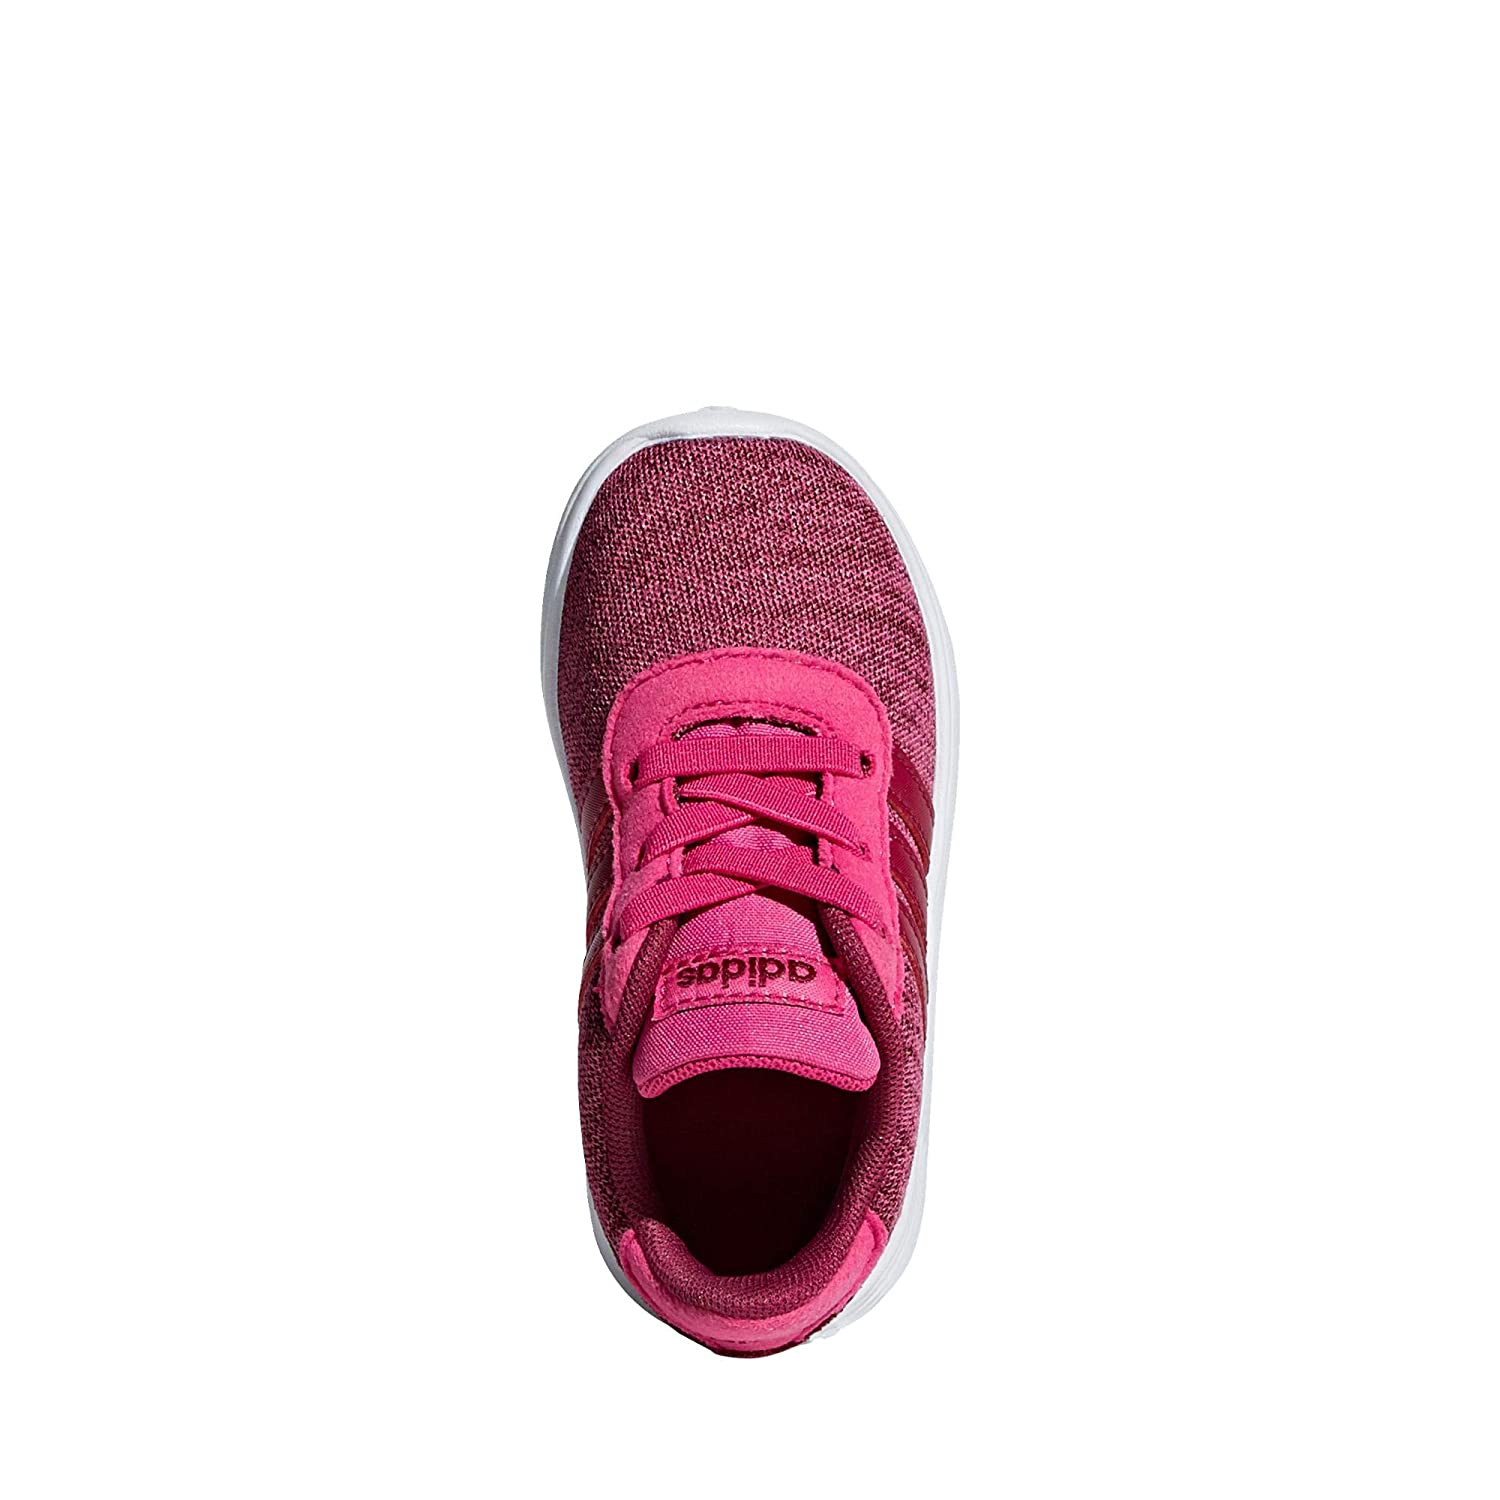 0420a8c42ad0 adidas Unisex Kids  Lite Racer Inf Training Shoes  Amazon.co.uk  Shoes    Bags